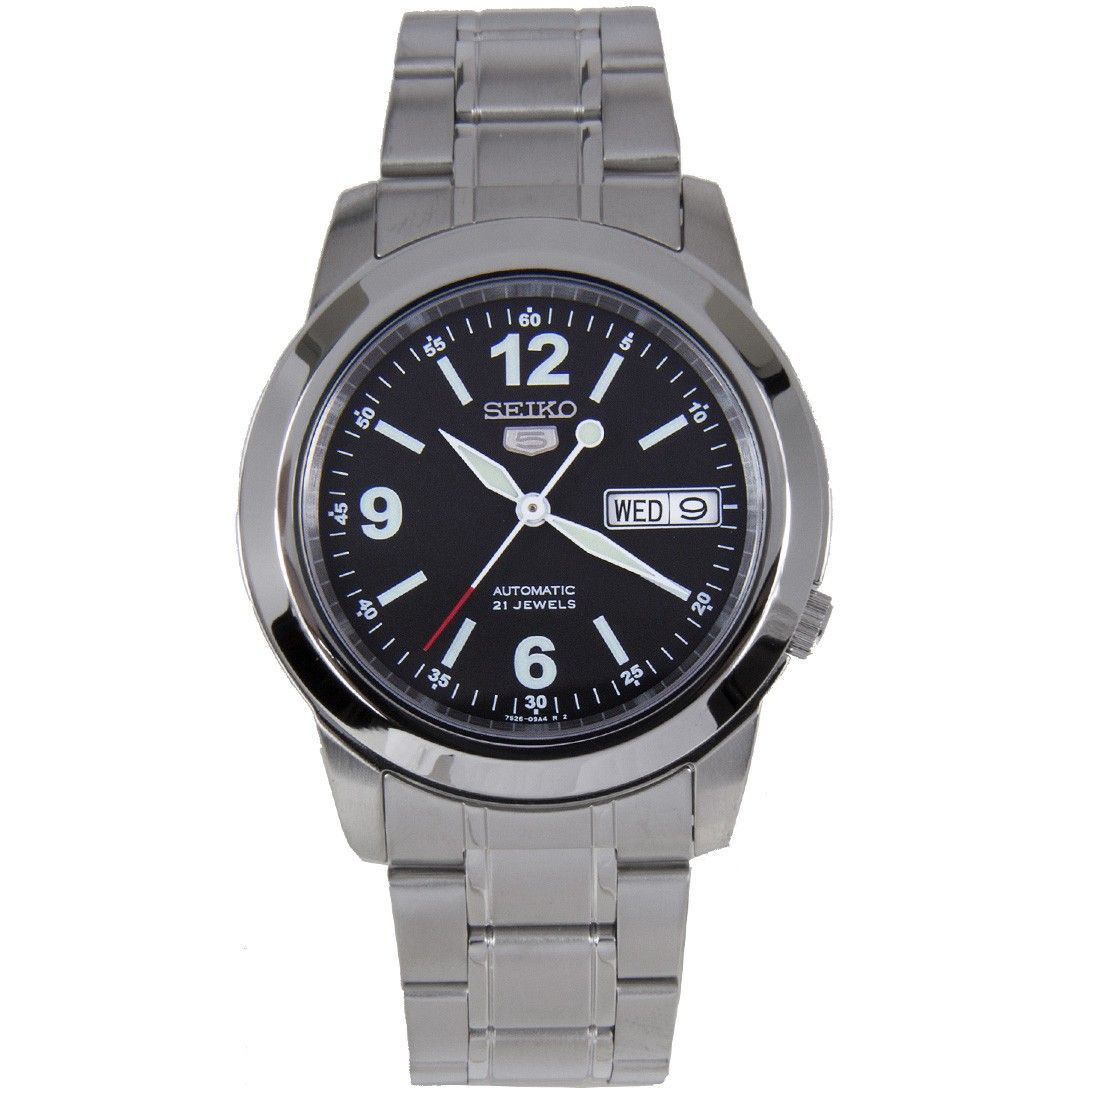 6188bddc3 Seiko 5 Sports Mens Automatic Watch SNKE63K1 low price International  Warranty free shipping to Singapore USA Hong Kong New Zealand Australia  Canada